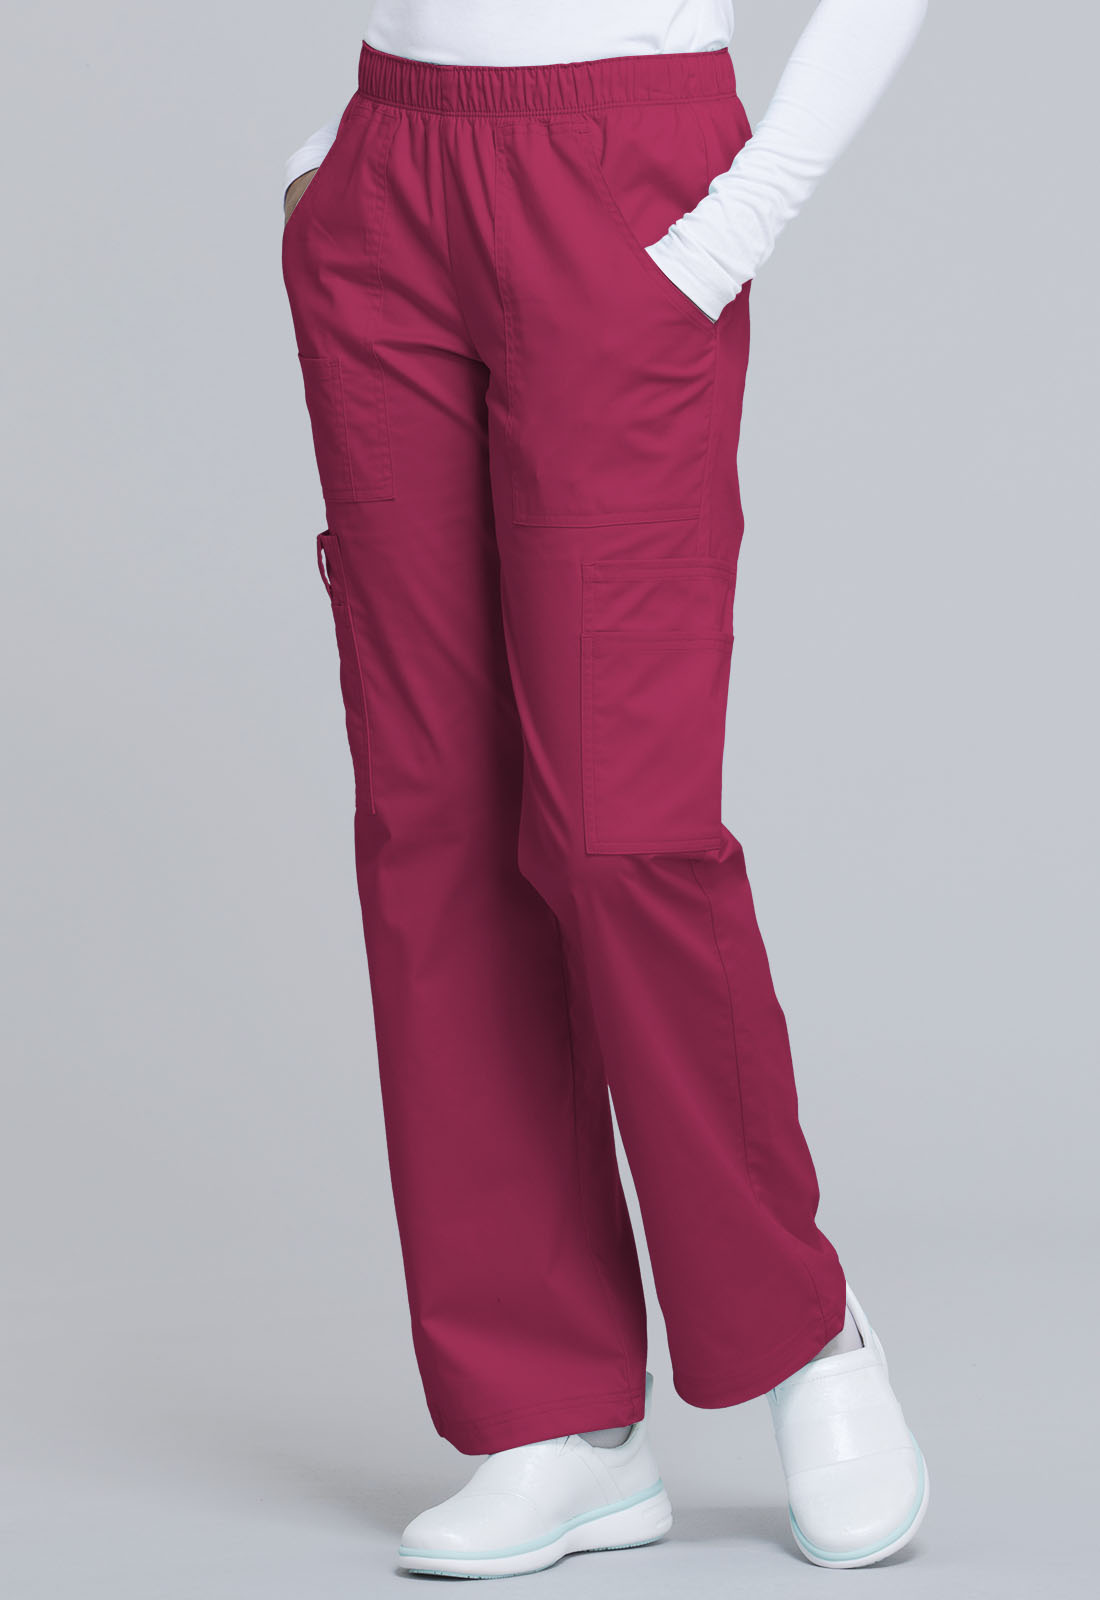 fe7d7959430 Cherokee Workwear. WW Core Stretch Mid Rise Pull-On Pant Cargo Pant in  Cerise (Petite)